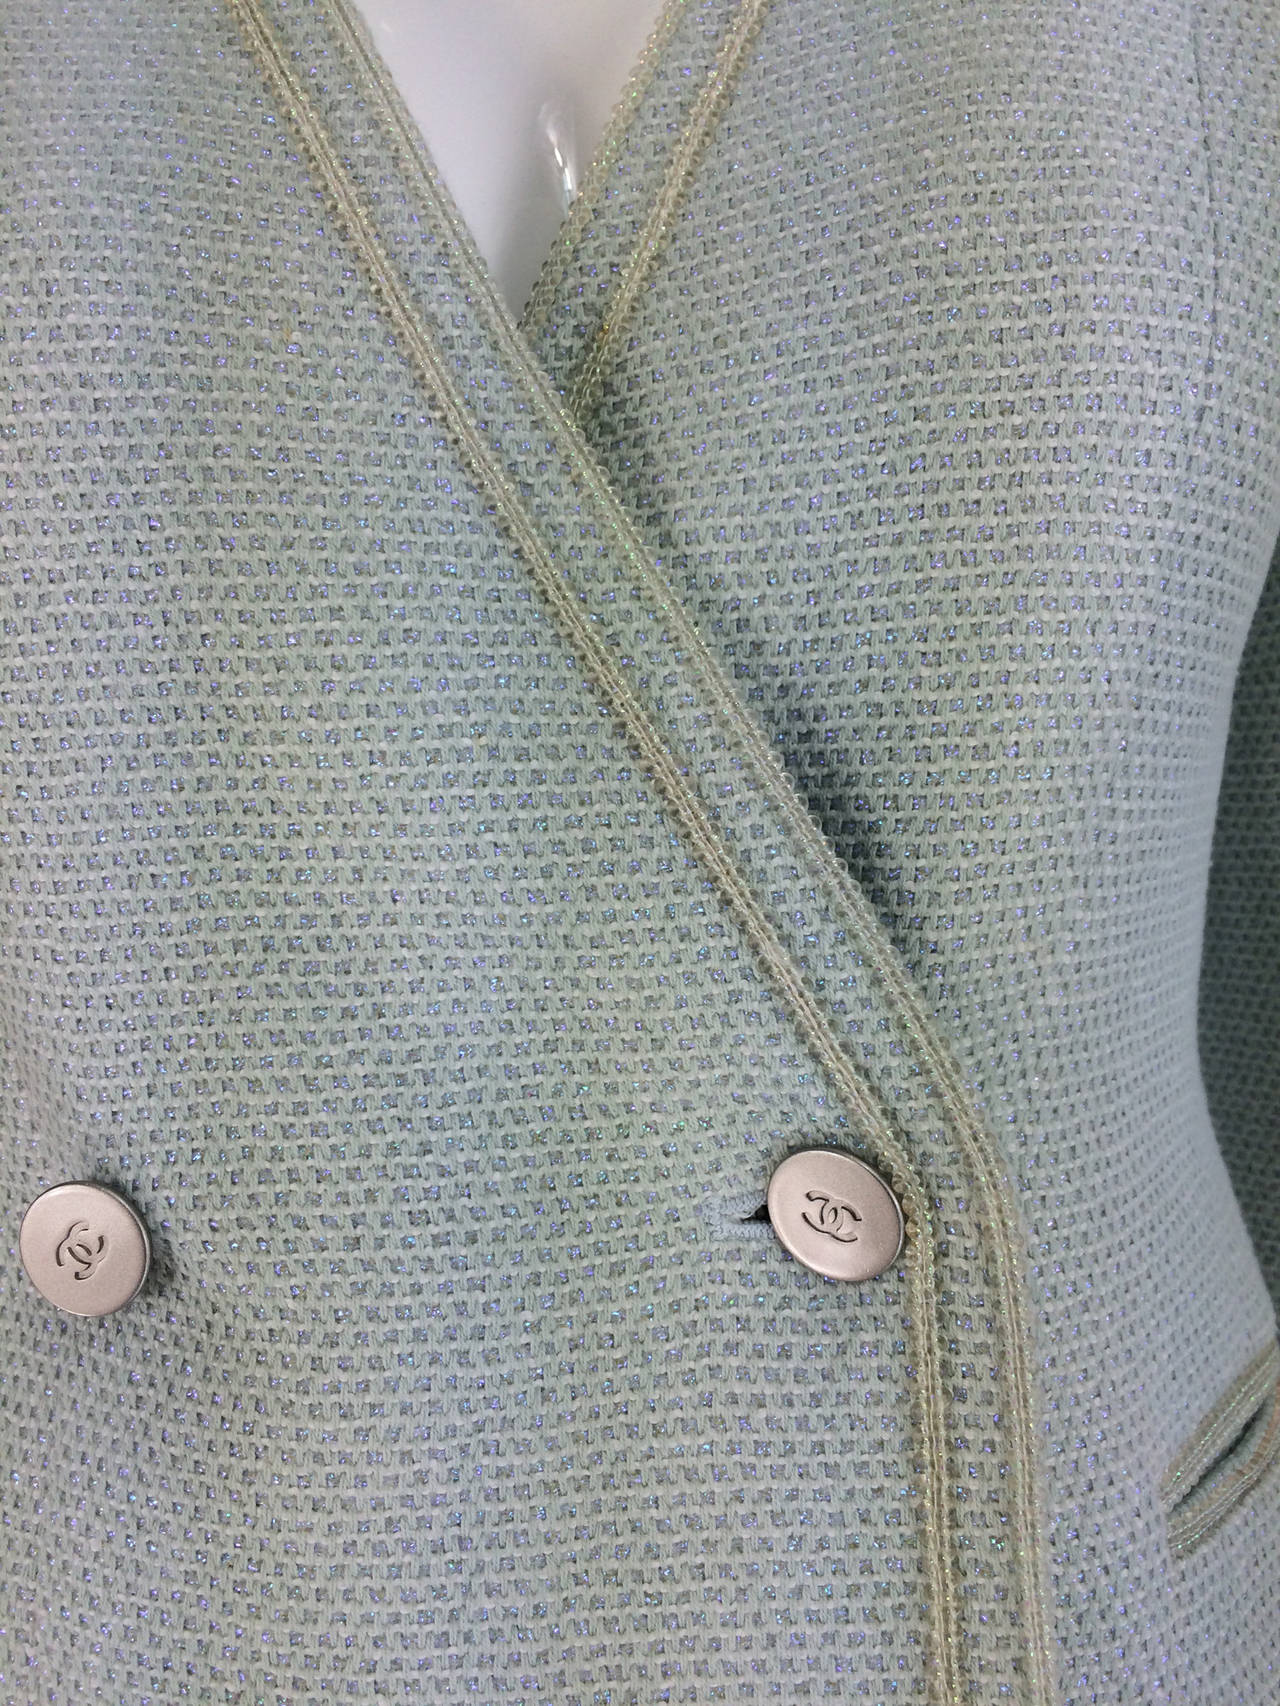 Chanel mint green glitter tweed cropped jacket 2000...Cropped jacket closes at the front with double buttons at the waist...V front...Long sleeves with button cuffs...Front faux pockets with banded trim...Marked size 36...Freshly dry cleaned and